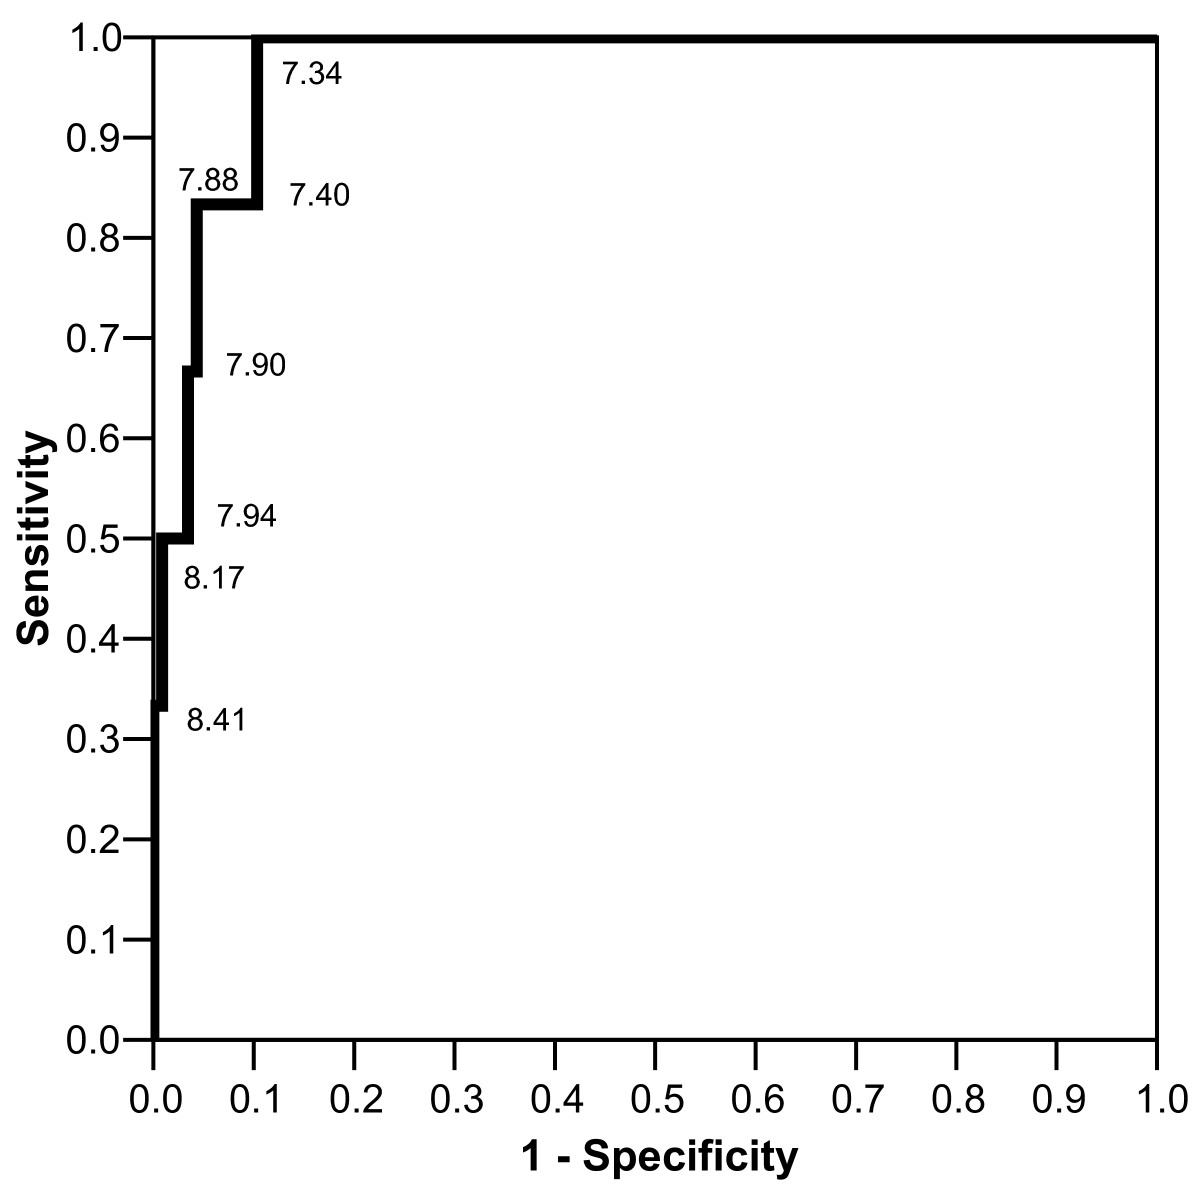 http://static-content.springer.com/image/art%3A10.1186%2F1471-5945-5-8/MediaObjects/12895_2005_Article_55_Fig1_HTML.jpg